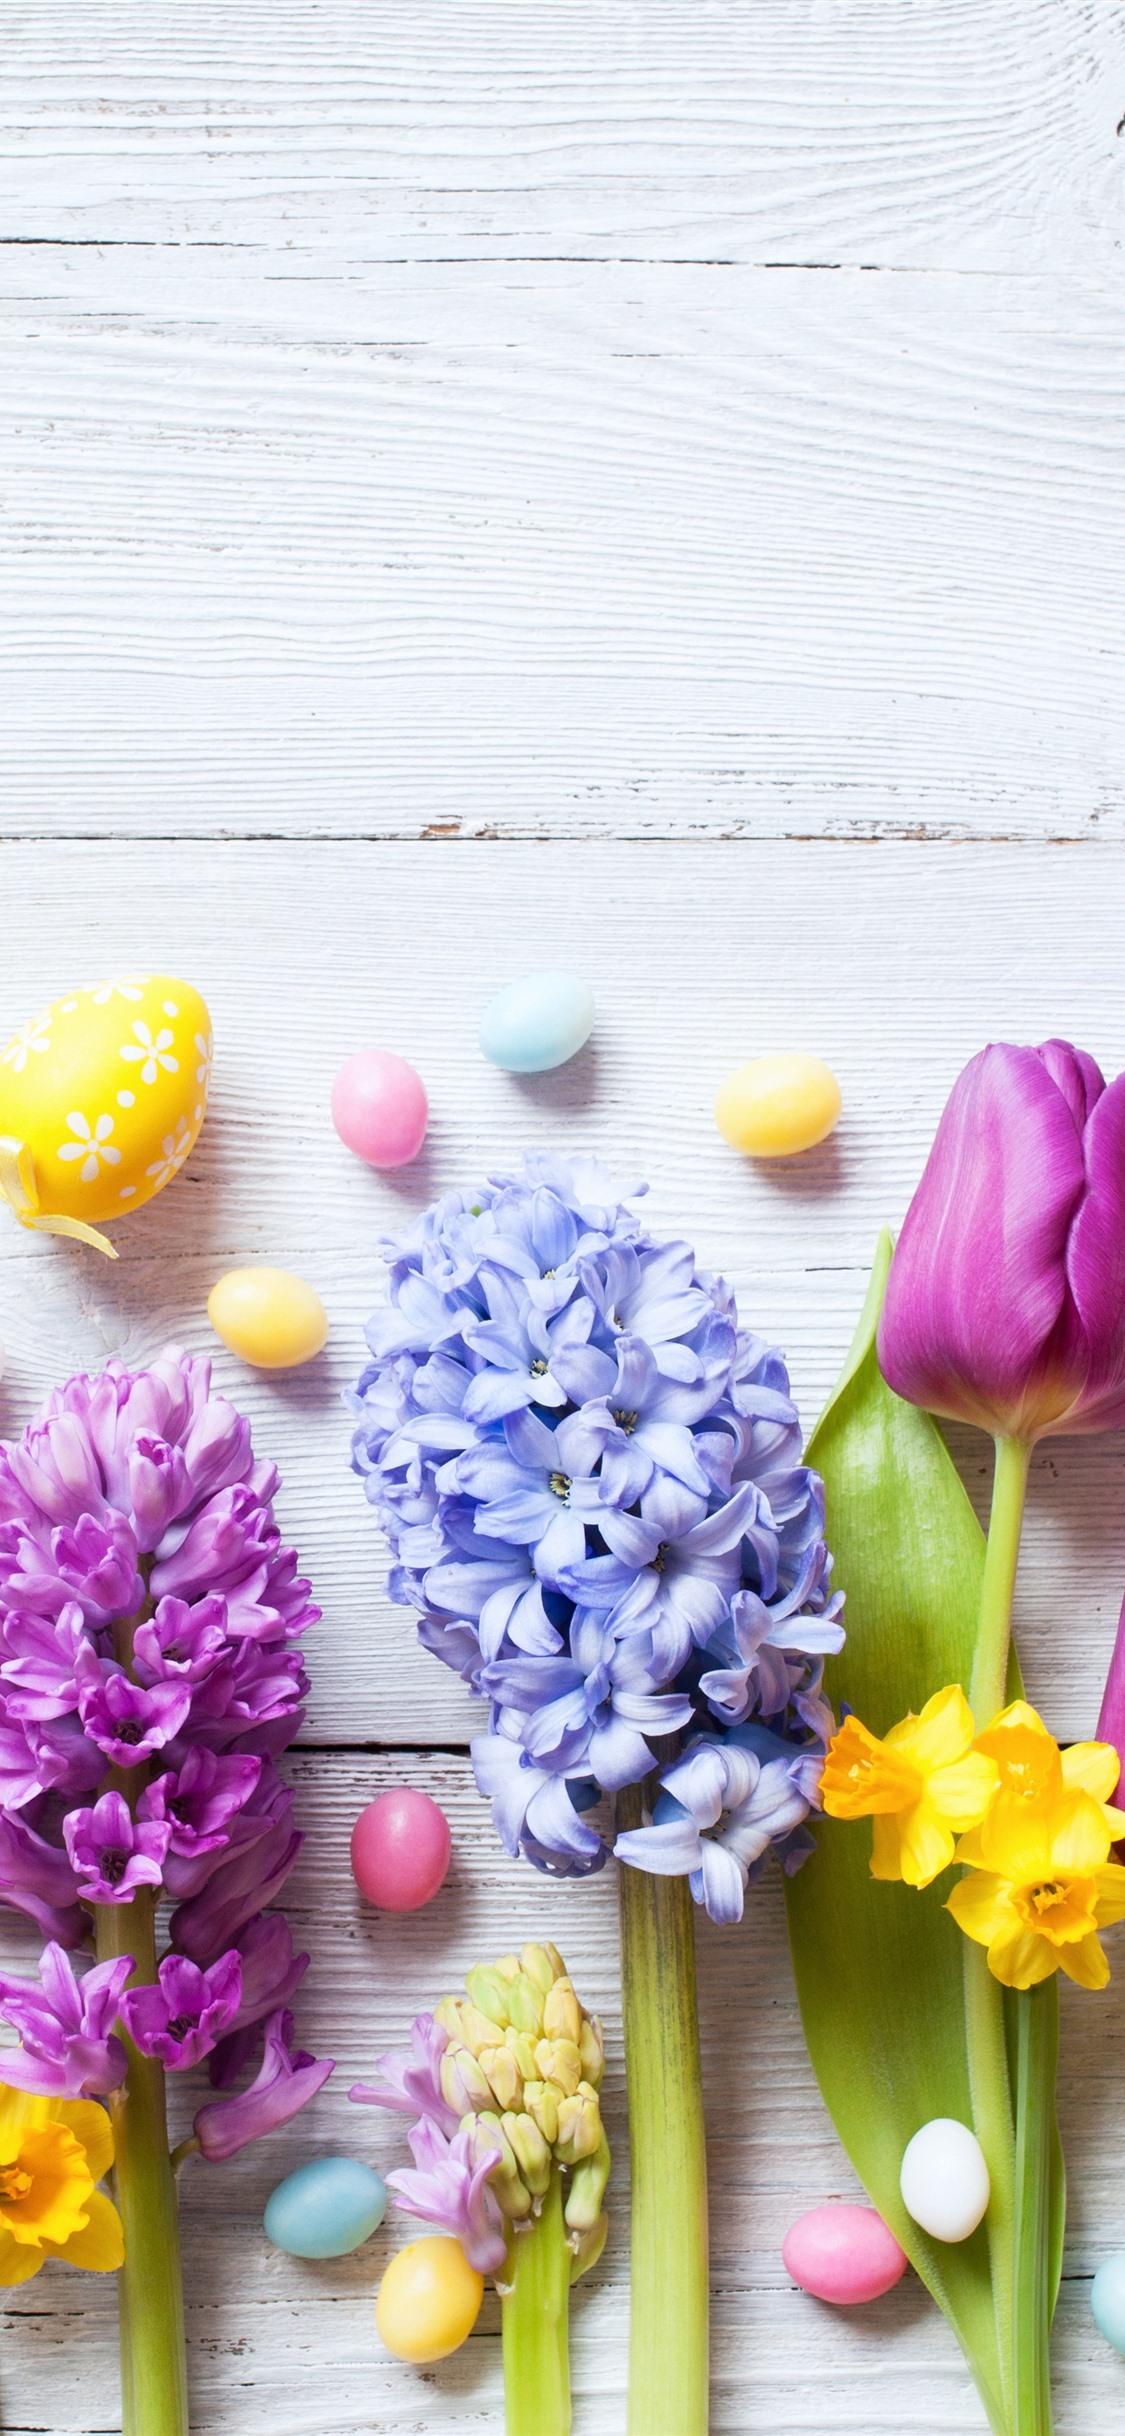 Easter Colorful Flowers Daffodils Tulips Hyacinth Eggs